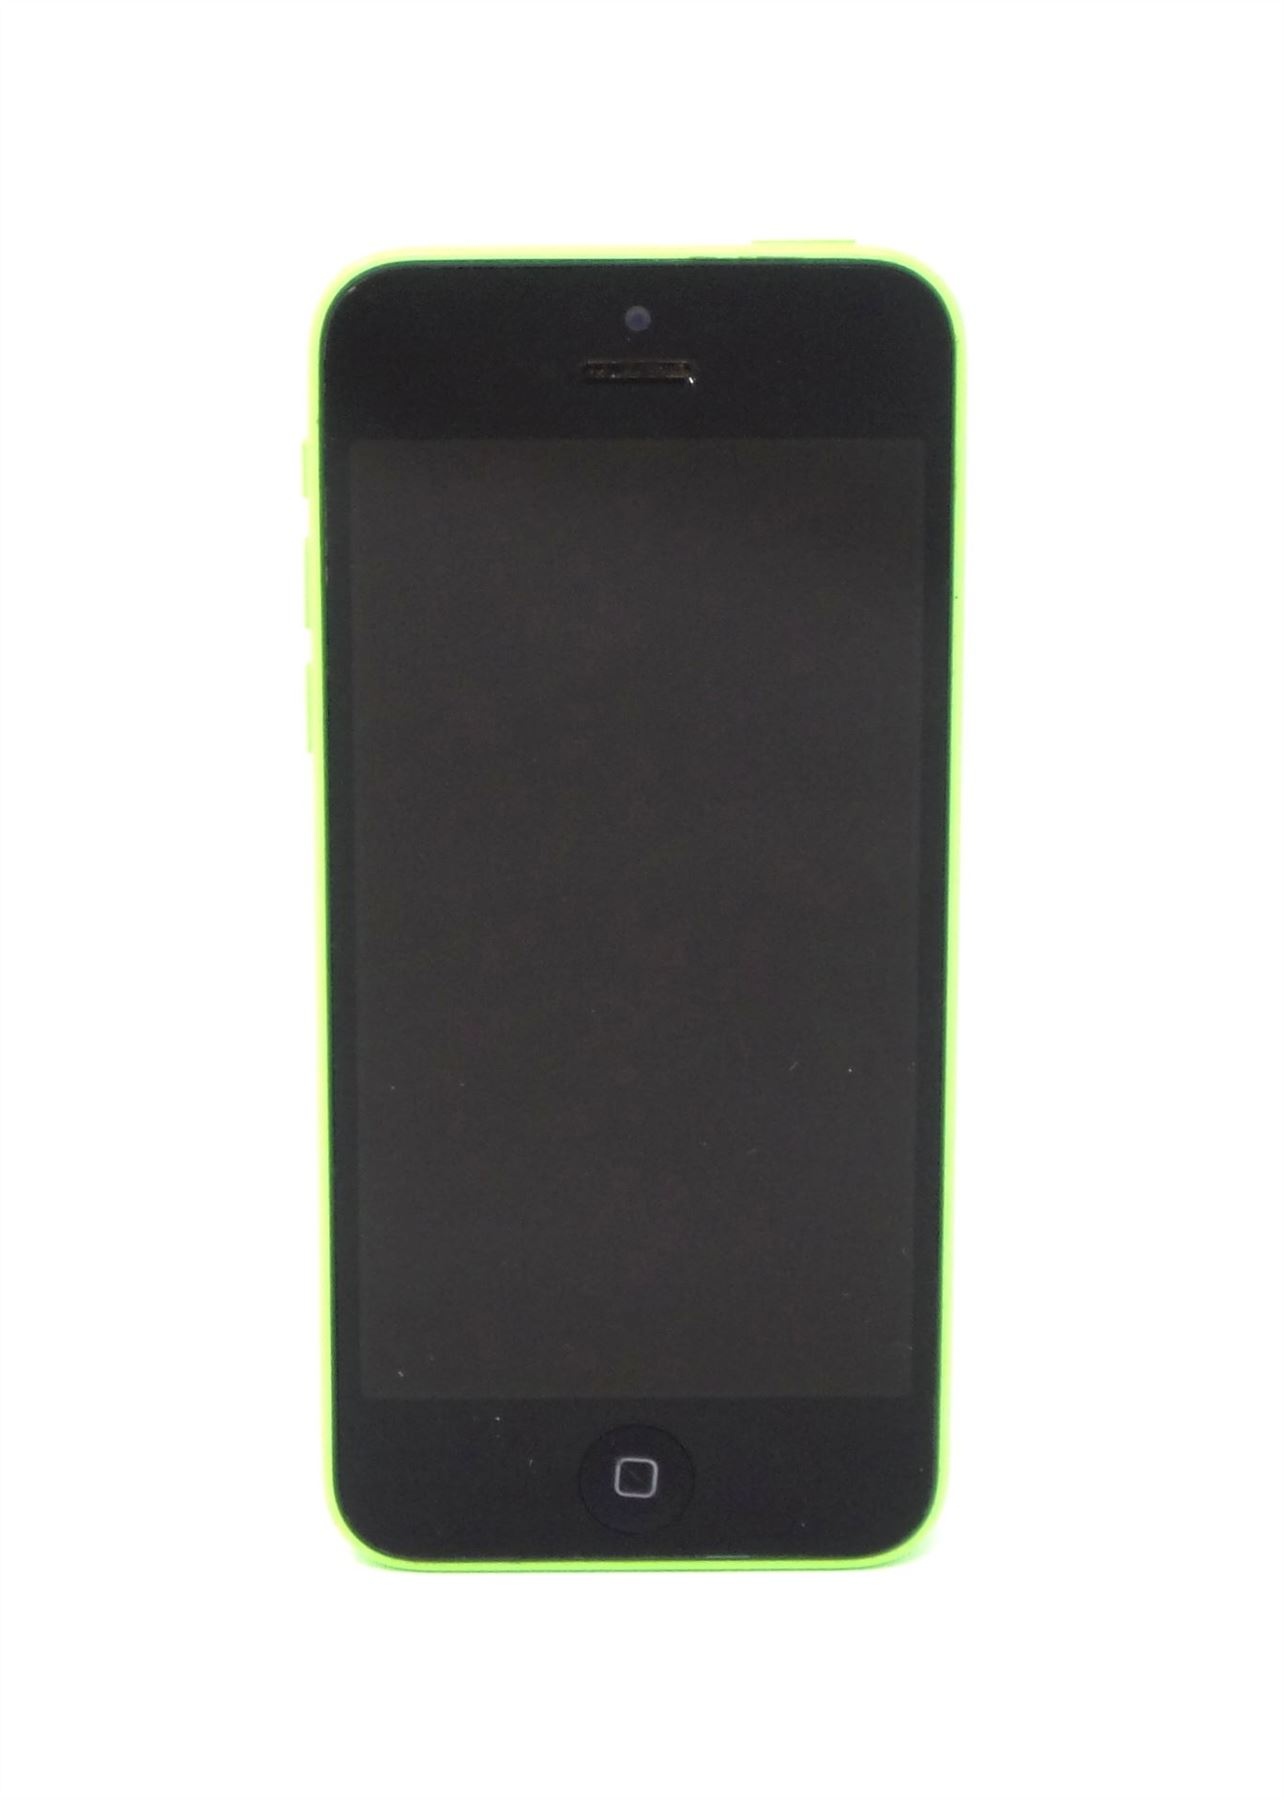 Apple iPhone 5c 8GB 16GB 32GB Smartphone All Colors Carriers Factory Unlocked